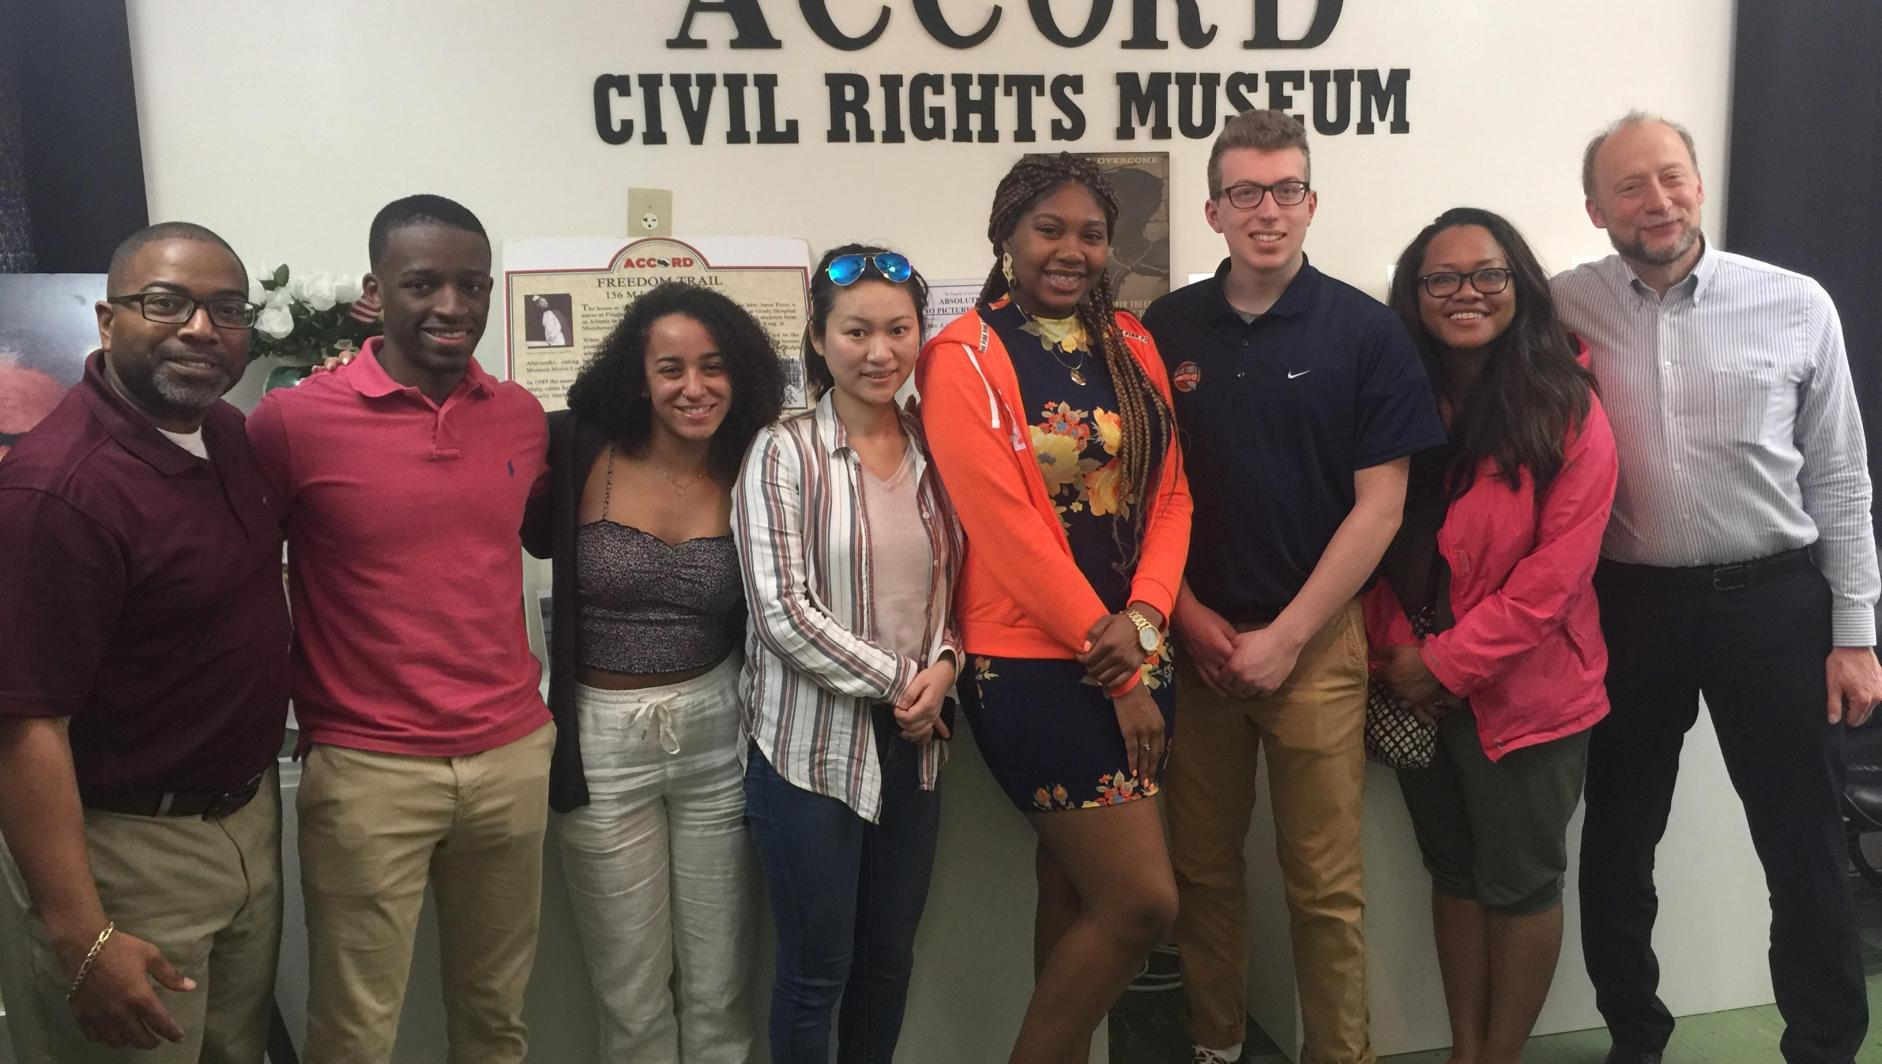 Students pose in the Accord Civil Rights Museum